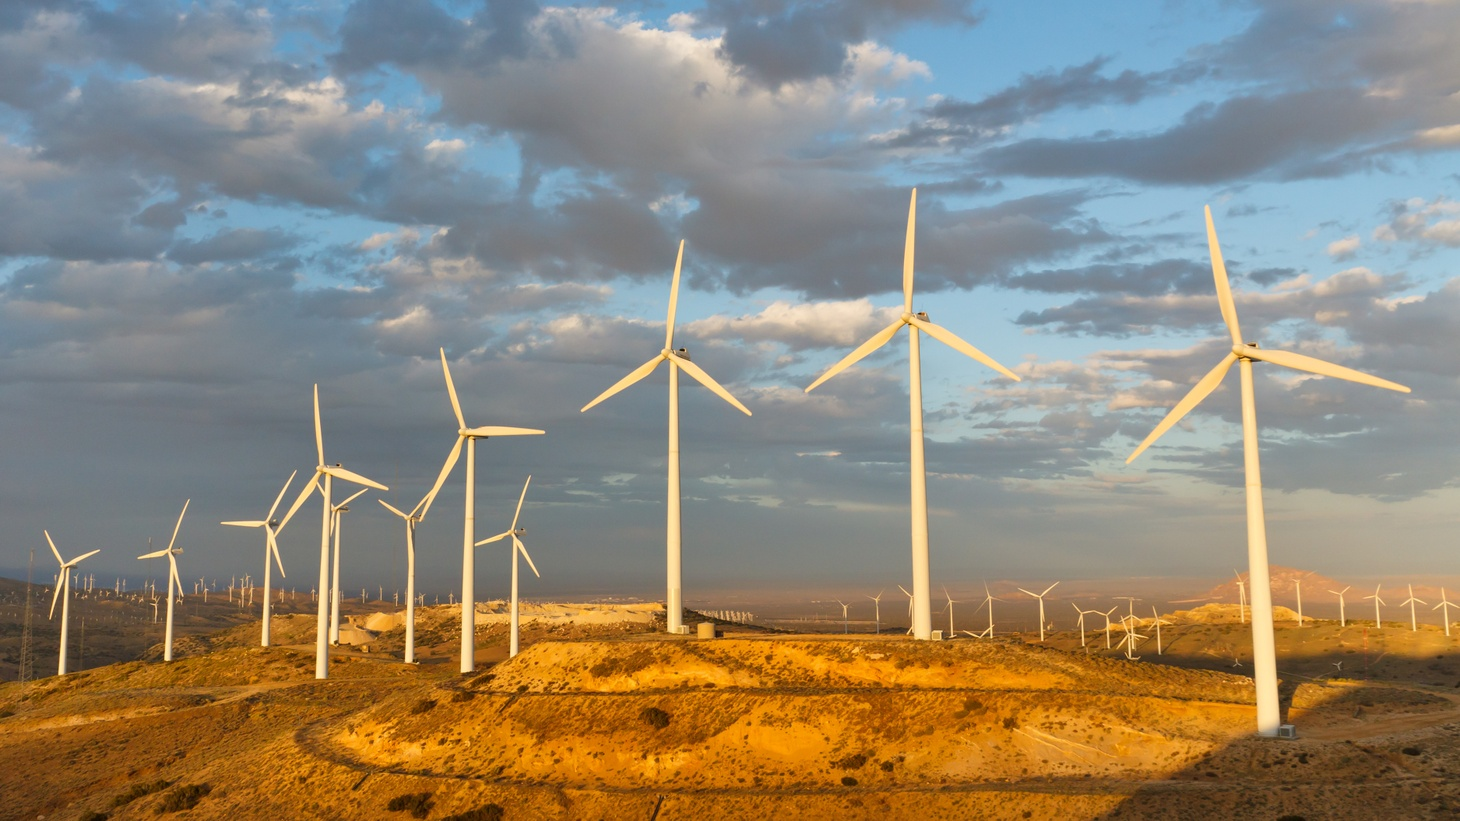 Windmills at Tehachapi Pass Wind Farm, California, generate clean renewable electrical energy without carbon dioxide emissions to fight climate change.